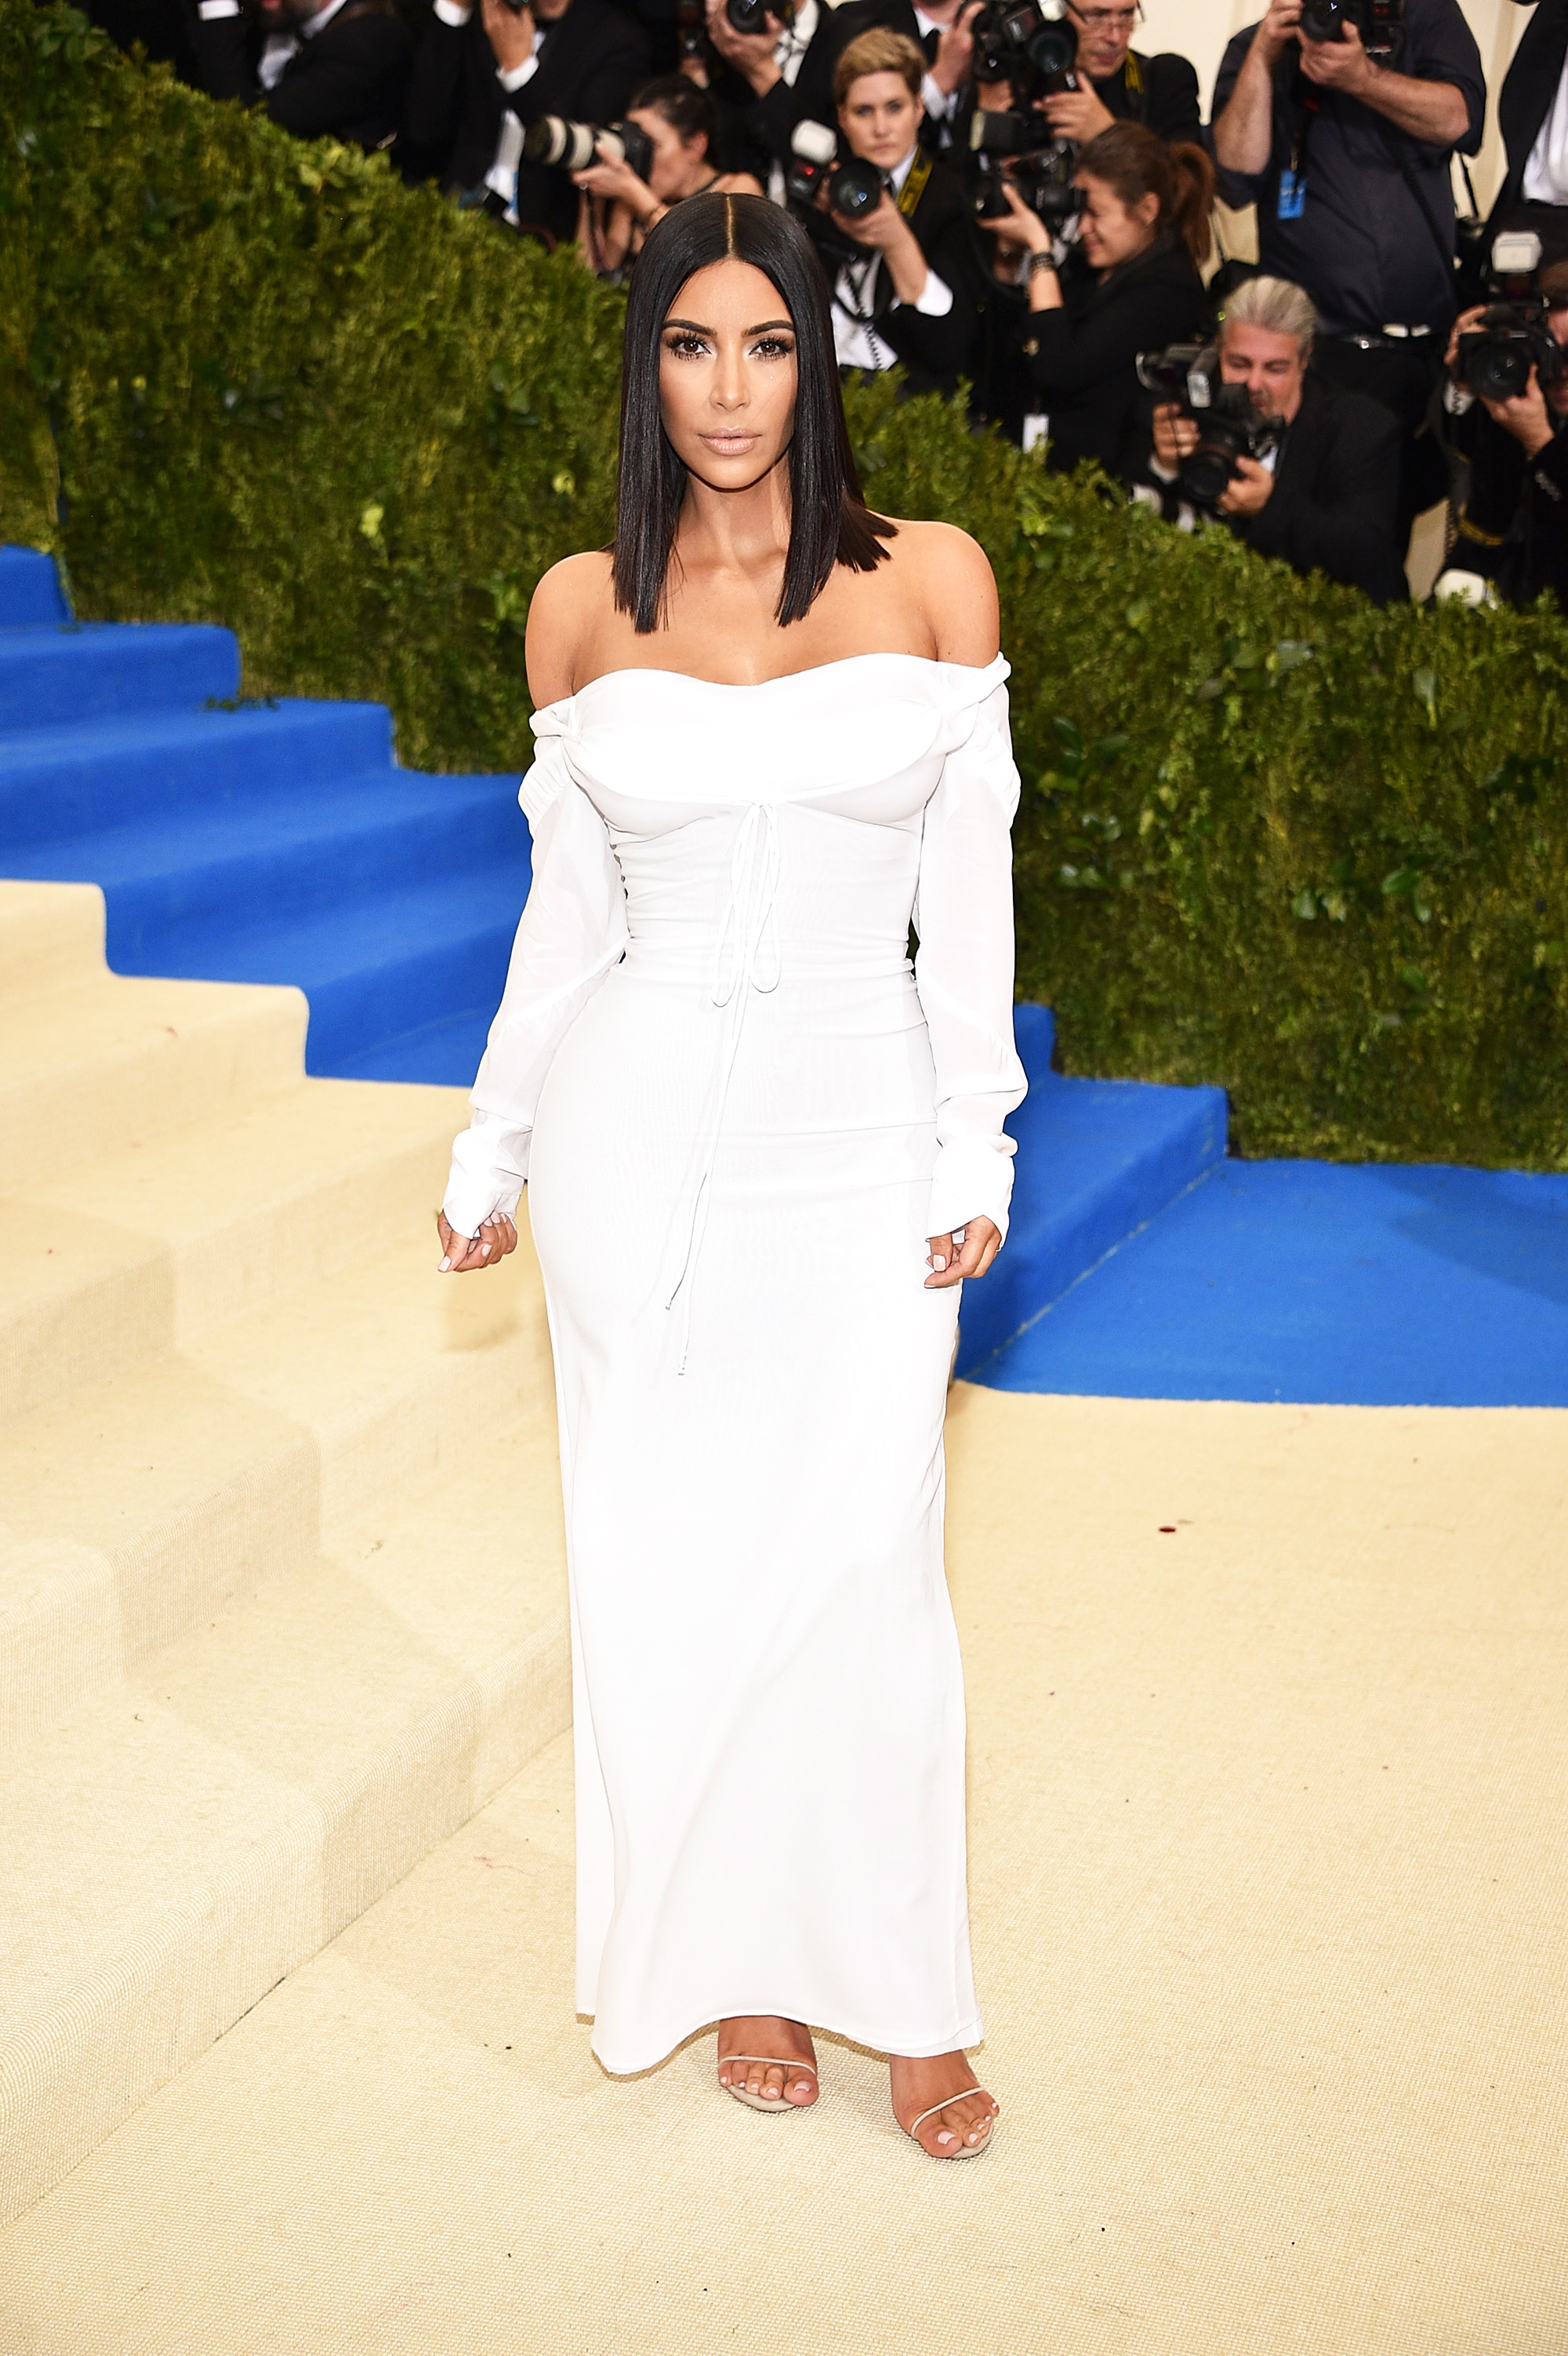 Kim Kardashian West attends The Metropolitan Museum of Art's Costume Institute benefit gala celebrating the opening of the Rei Kawakubo/Comme des Garçons: Art of the In-Between exhibition in New York City, on May 1, 2017.